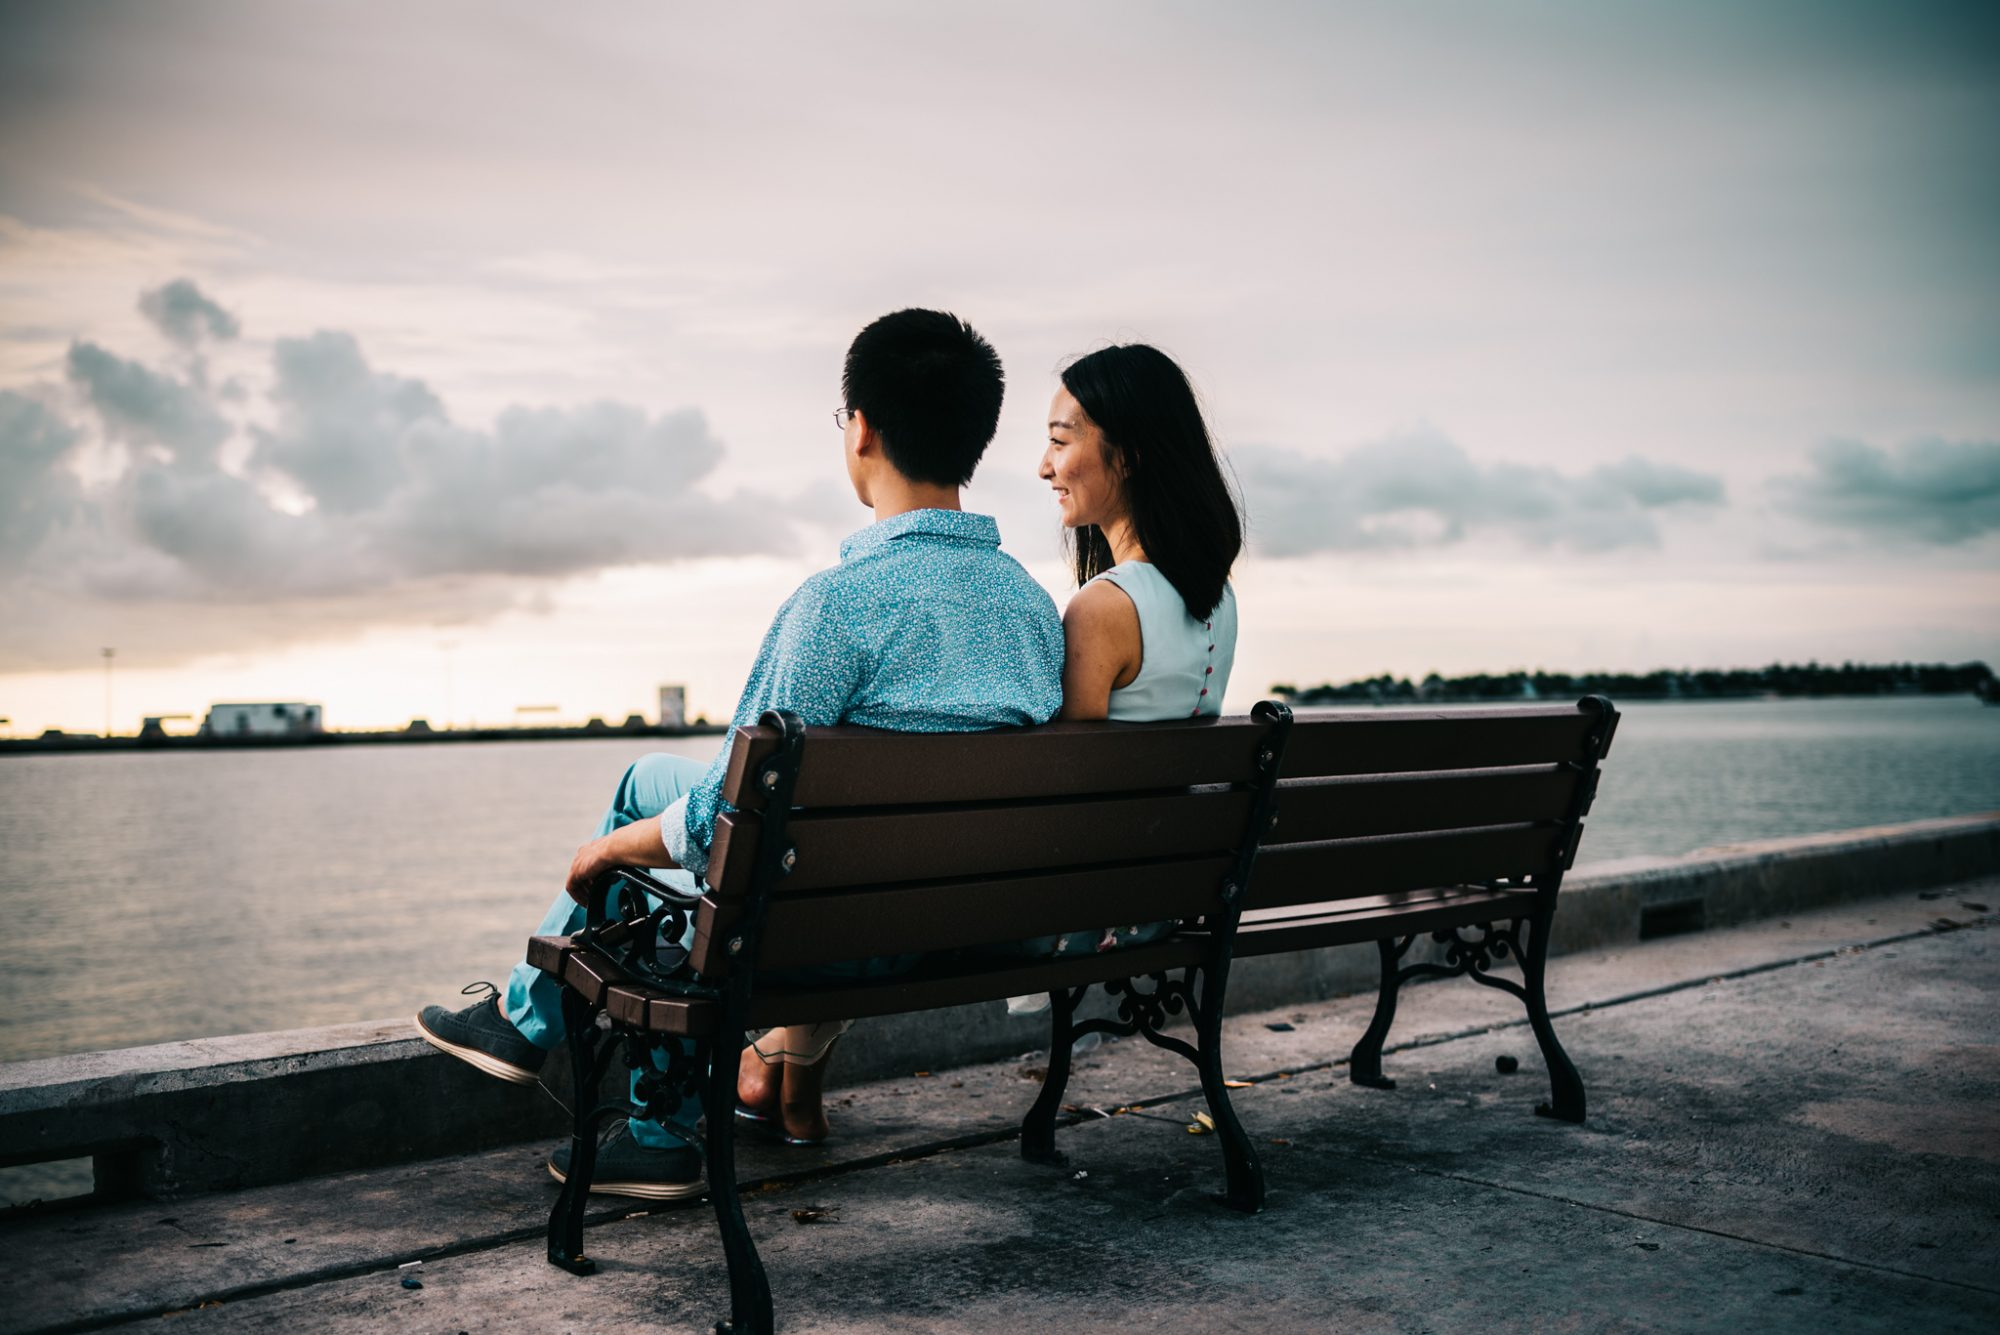 FBF1475 - Xiao & Ying | Key West, FL | Engagement Sunset Session